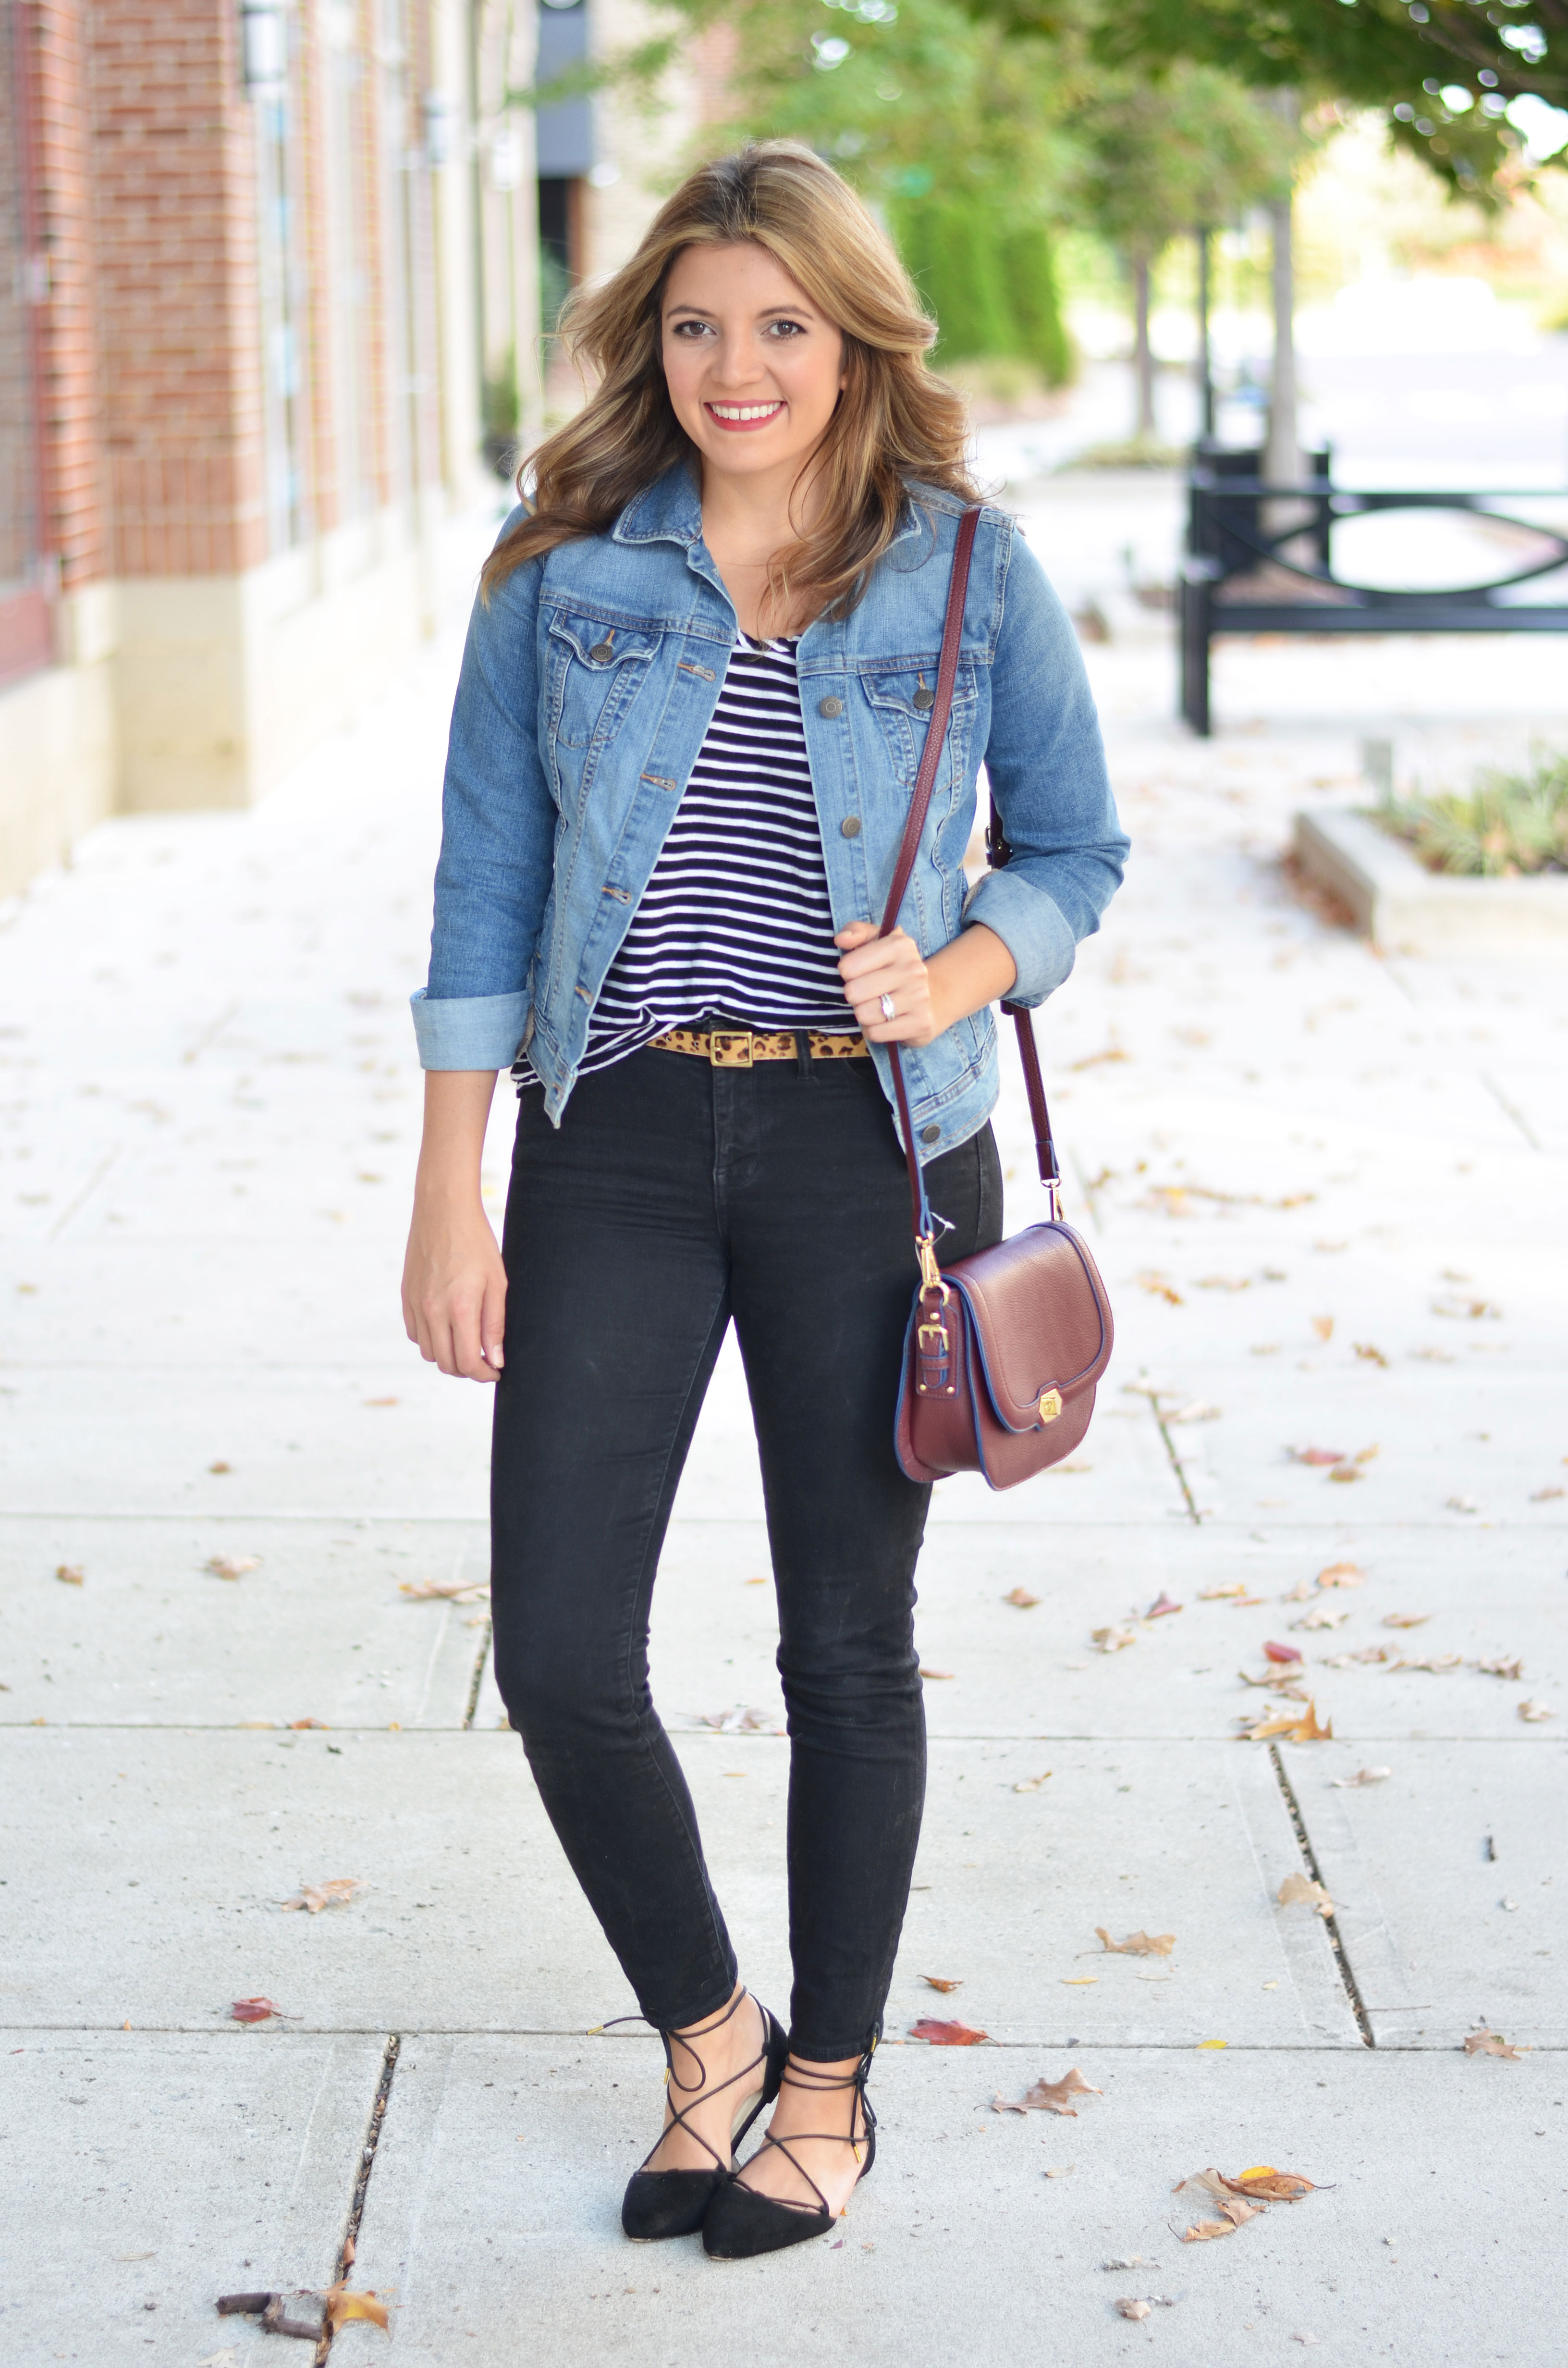 stripes and leopard print outfit - black jeans, stripe tee, leopard print belt, and denim jacket | www.bylaurenm.com